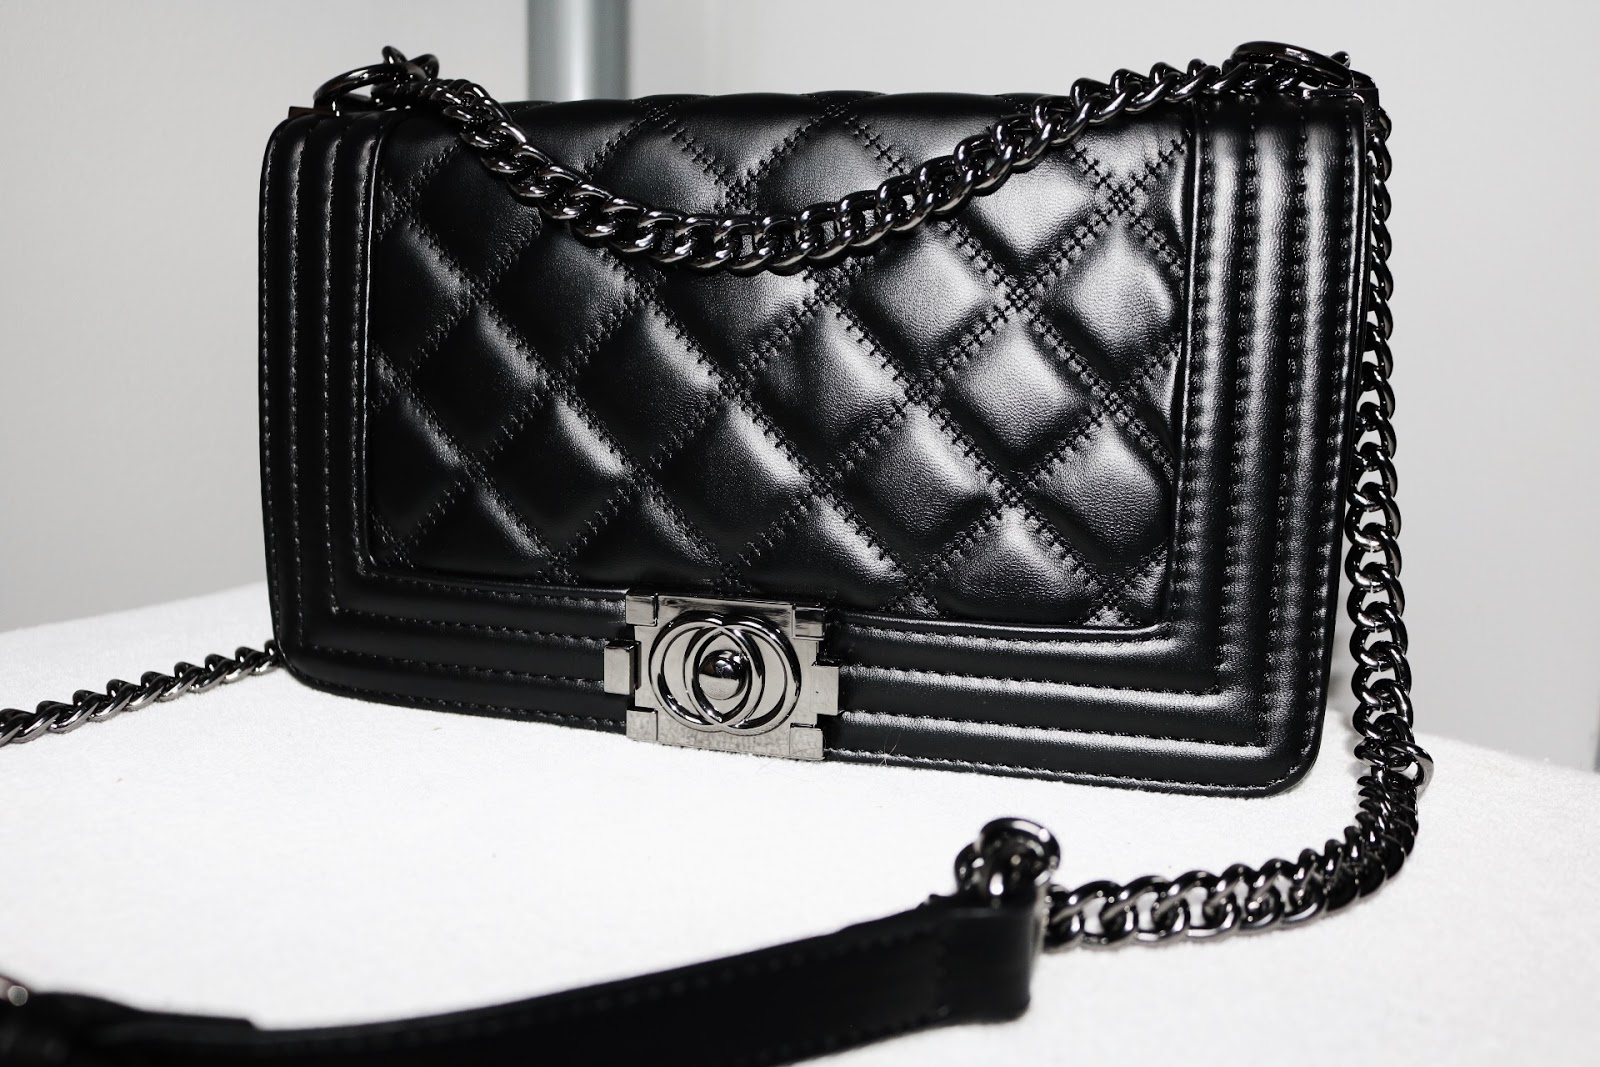 c5f7c74fad93 Aliexpress Chanel Handbags | Stanford Center for Opportunity Policy ...